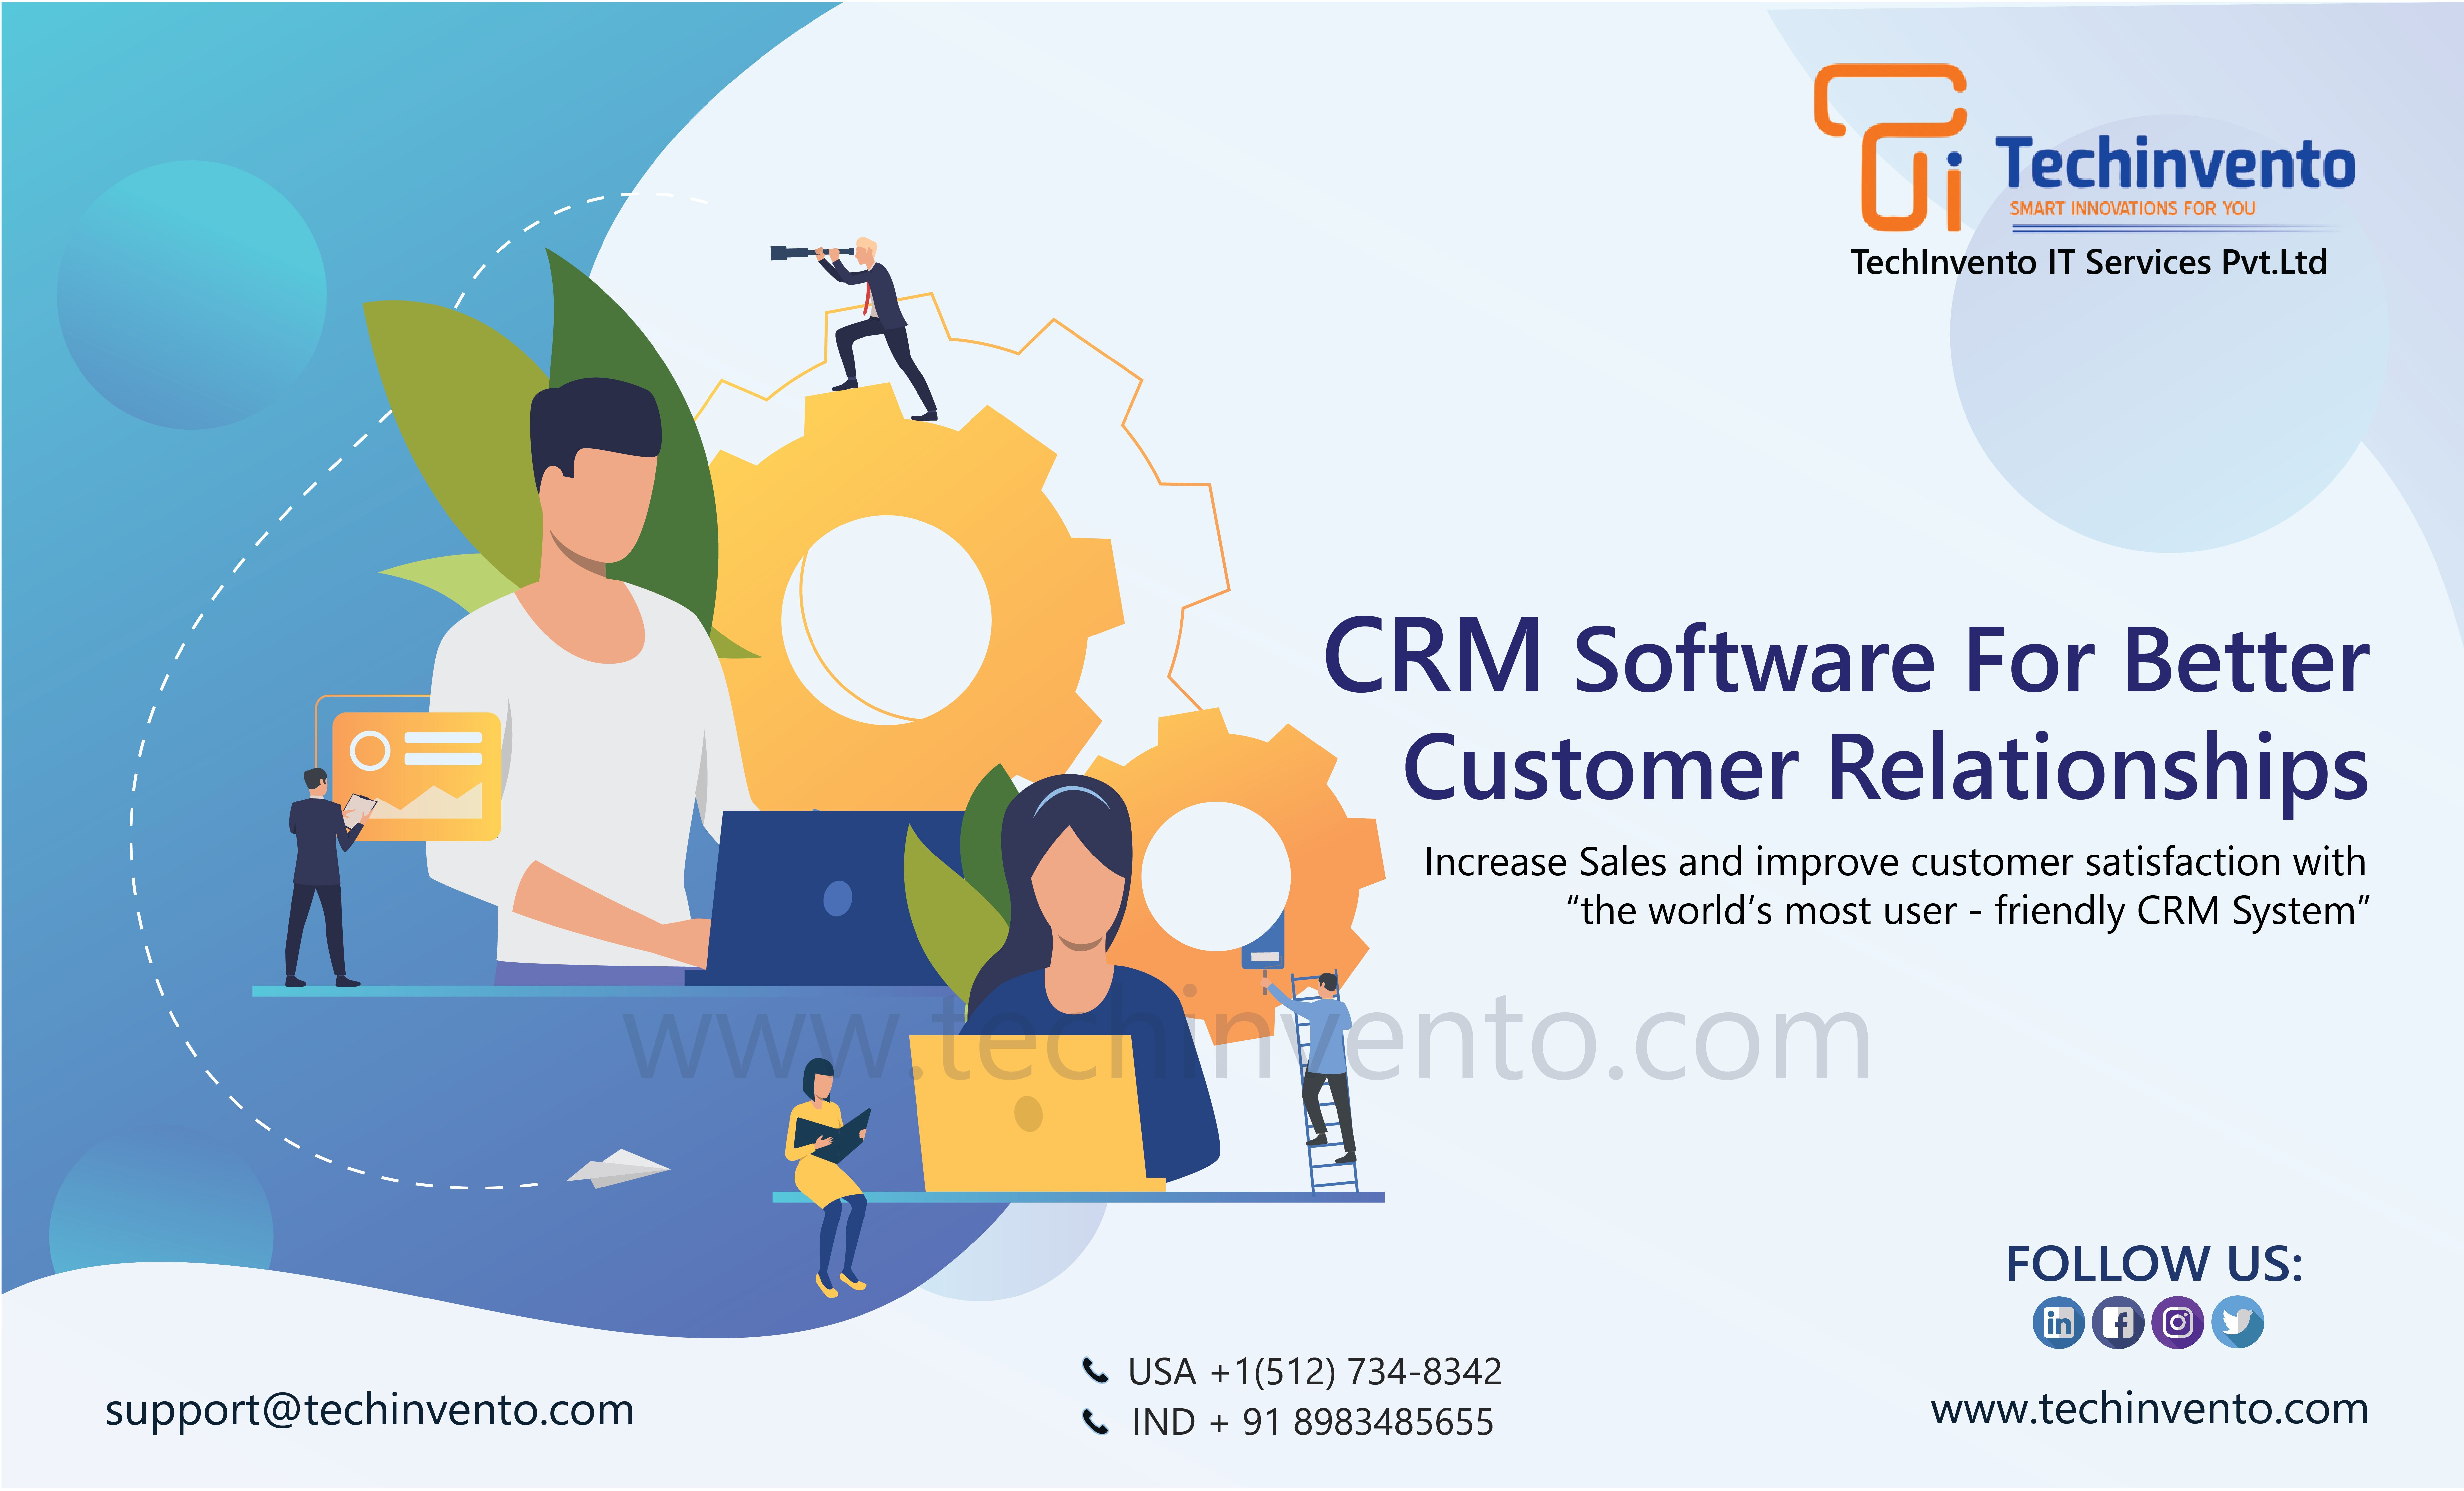 Crm Software In 2020 Crm System Crm Software App Development Companies